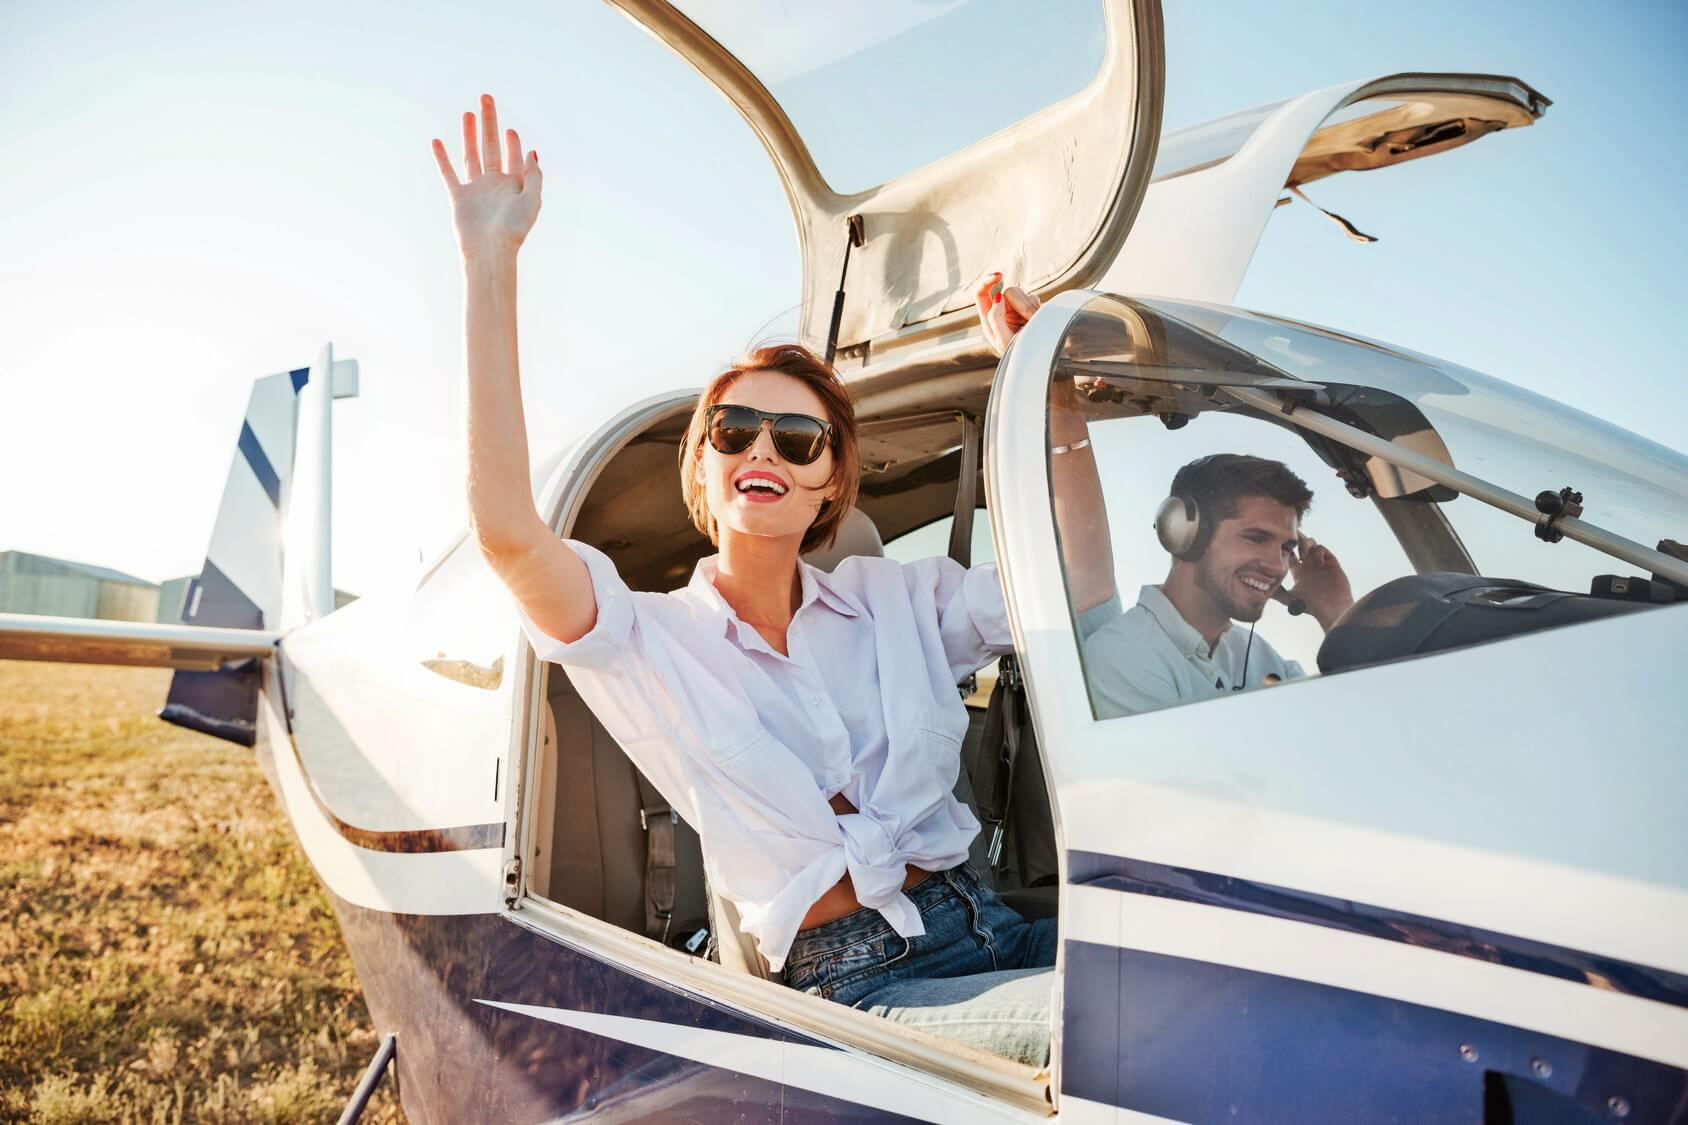 Safest Places To Travel - Private Jet In Austria - AssistAnt Luxury Travel